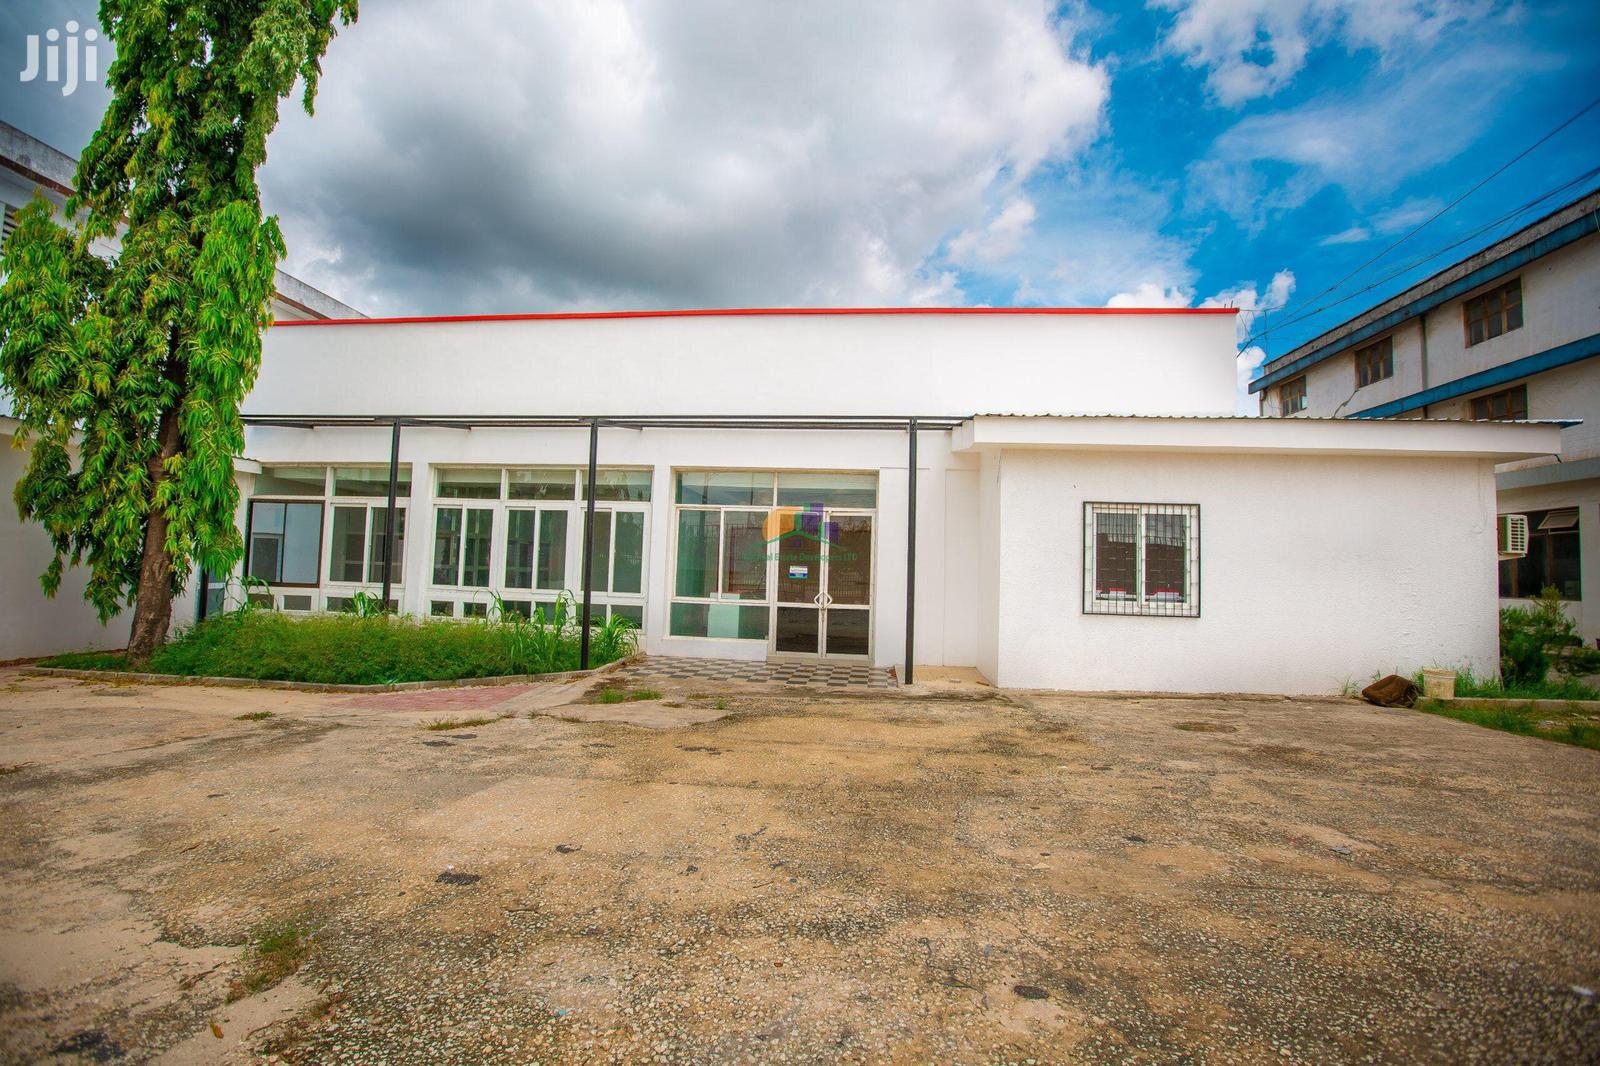 Yard and Office for Sale in Dar Es Salaam, Tanzania | Commercial Property For Sale for sale in Vingunguti, Ilala, Tanzania